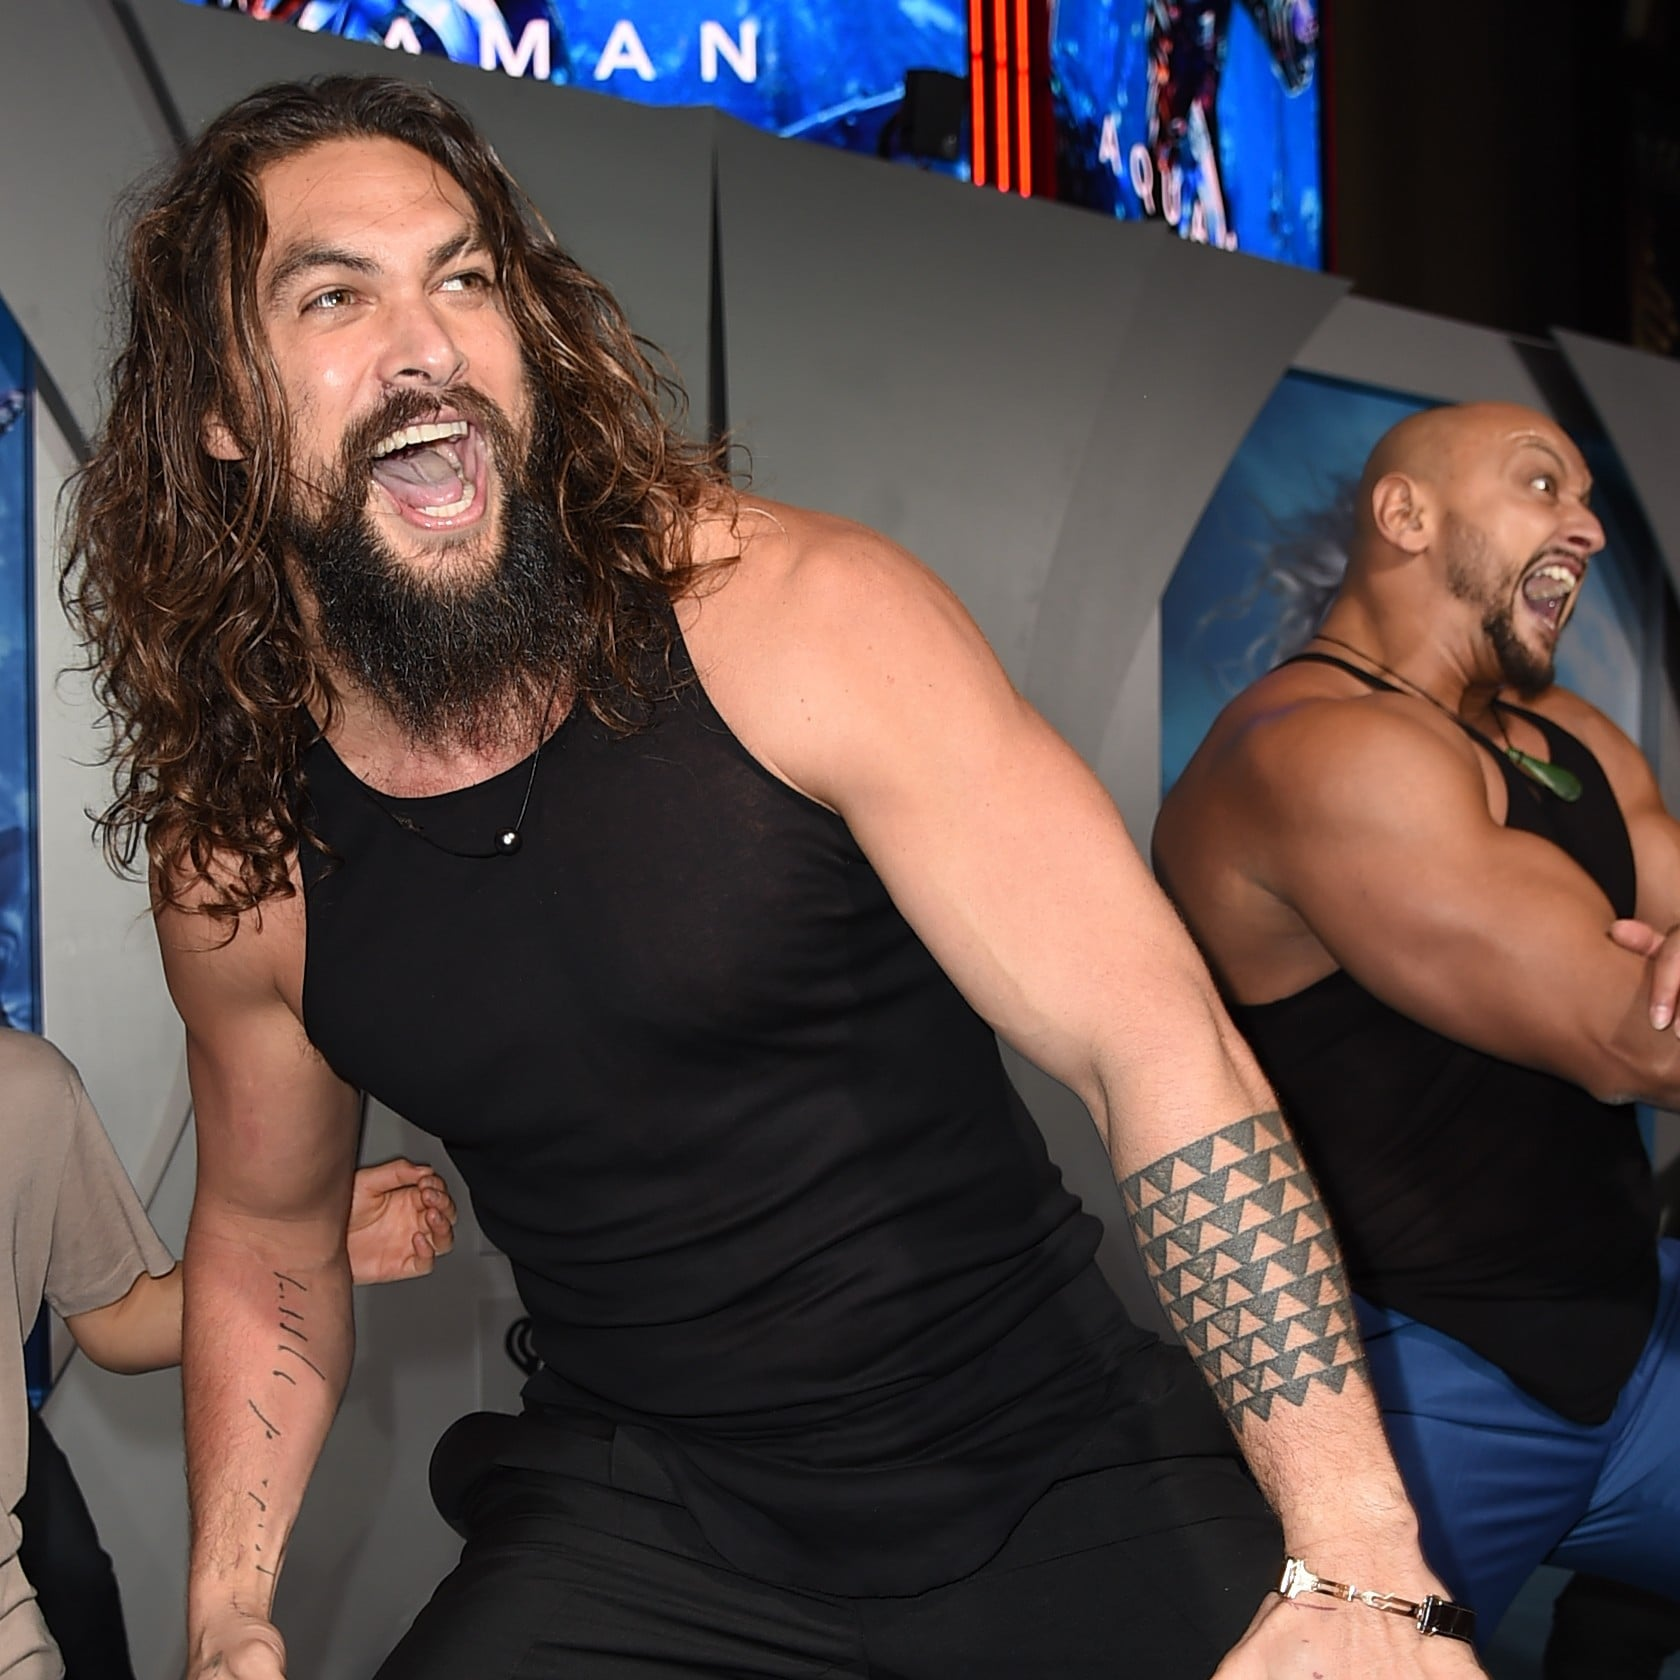 Jason Momoa Transformation: How Jason Momoa Added Even More Muscle For Aquaman In